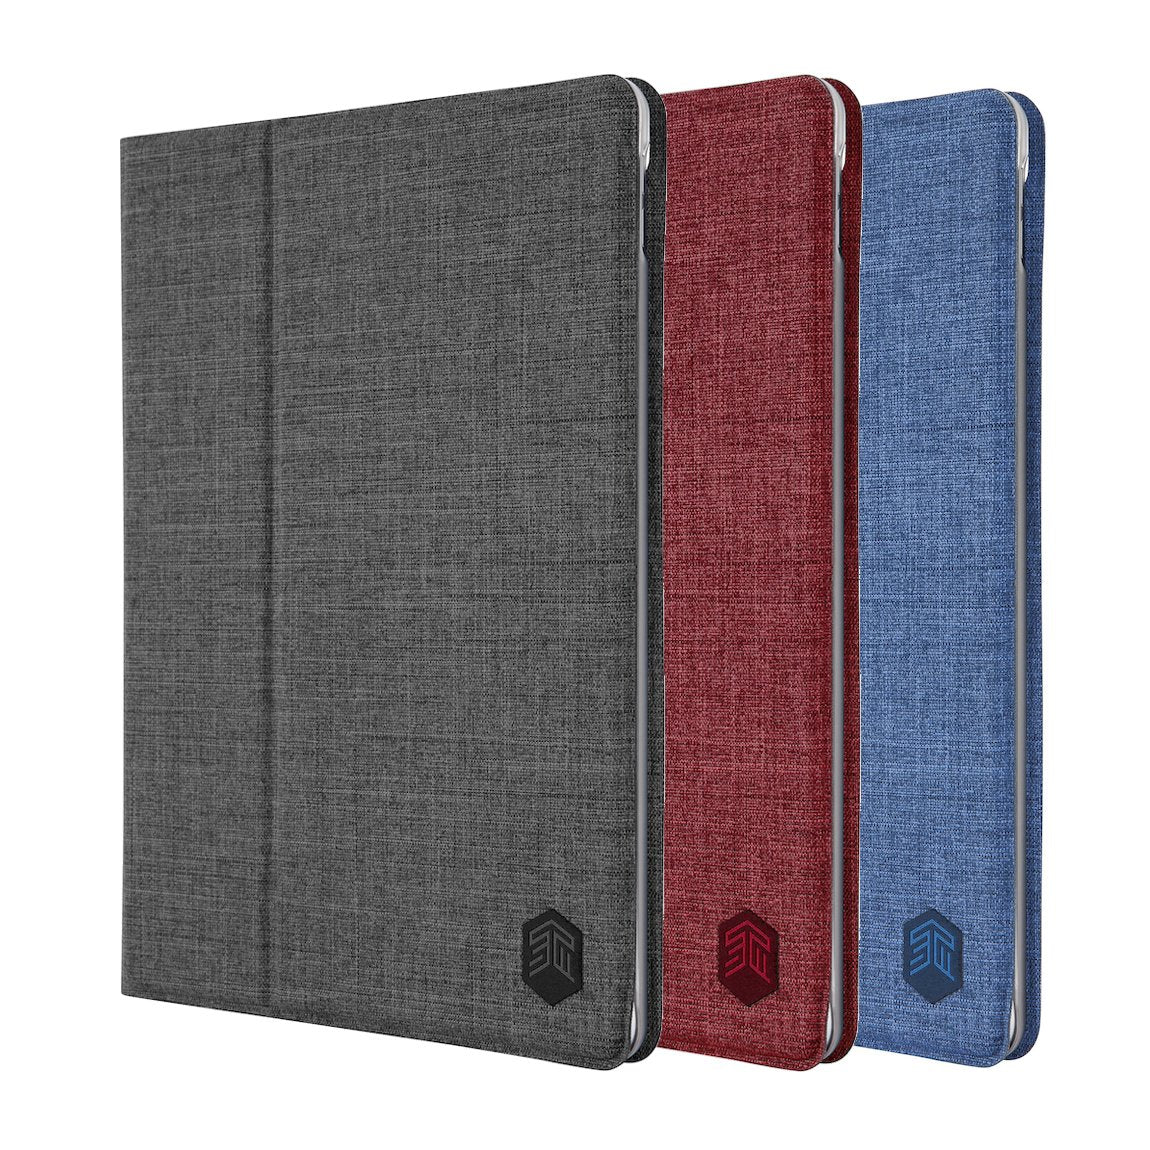 "STM Atlas Fabric Folio Cover Case / Pencil Holder For iPad 6th/5th Gen/Pro 9.7""/Air 2"